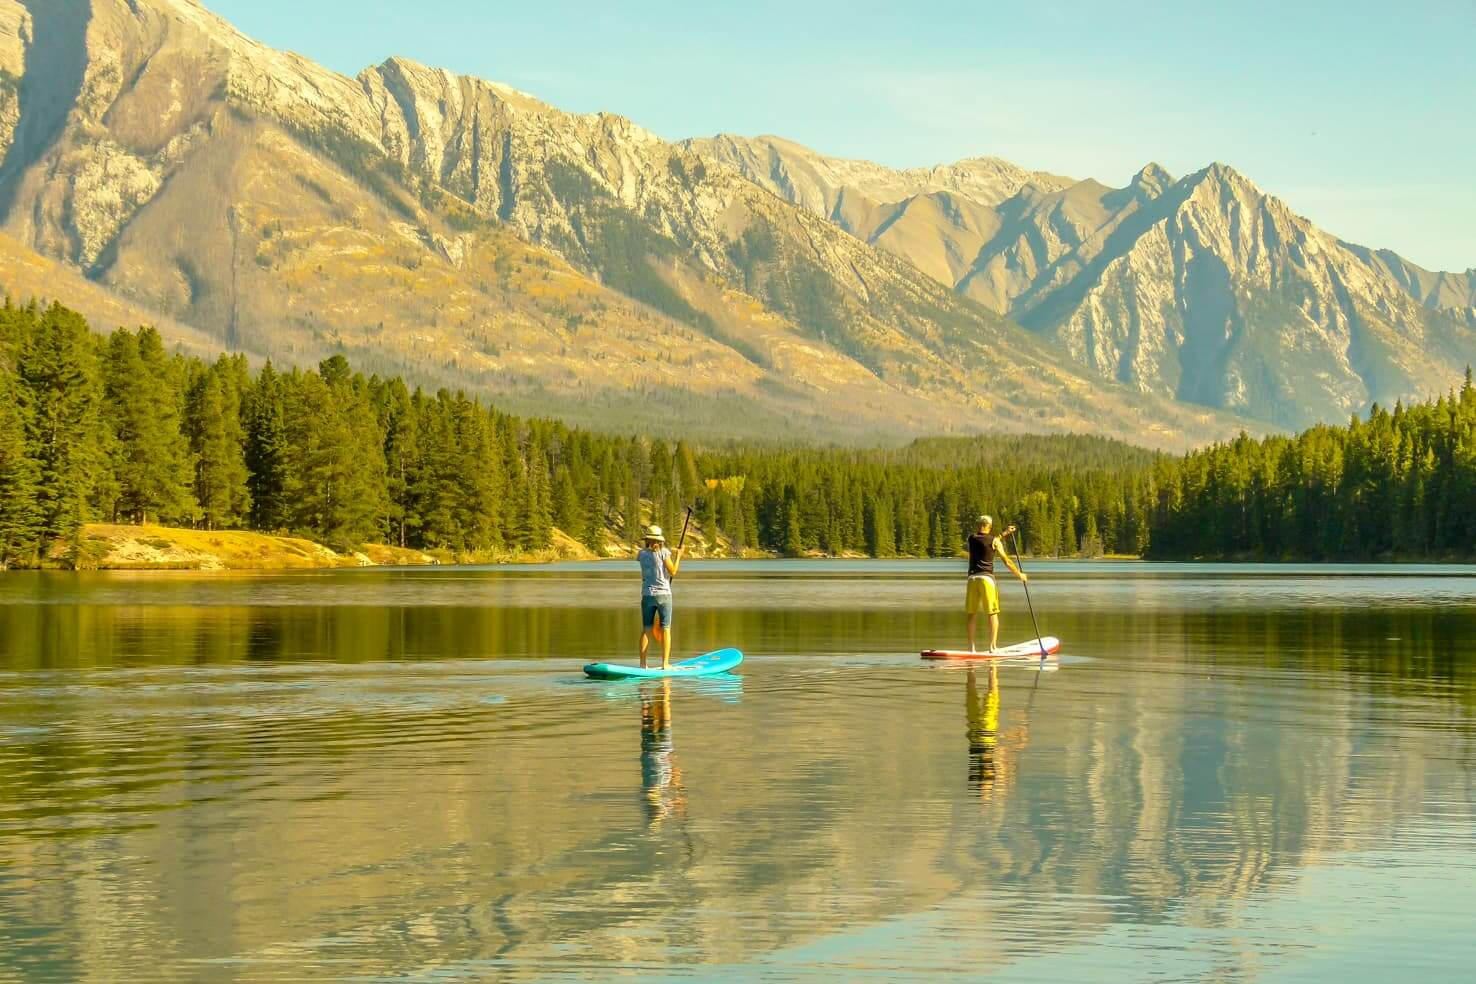 100 best things to do in Banff National Park, Canada - Stand up paddleboard on pristine lakes